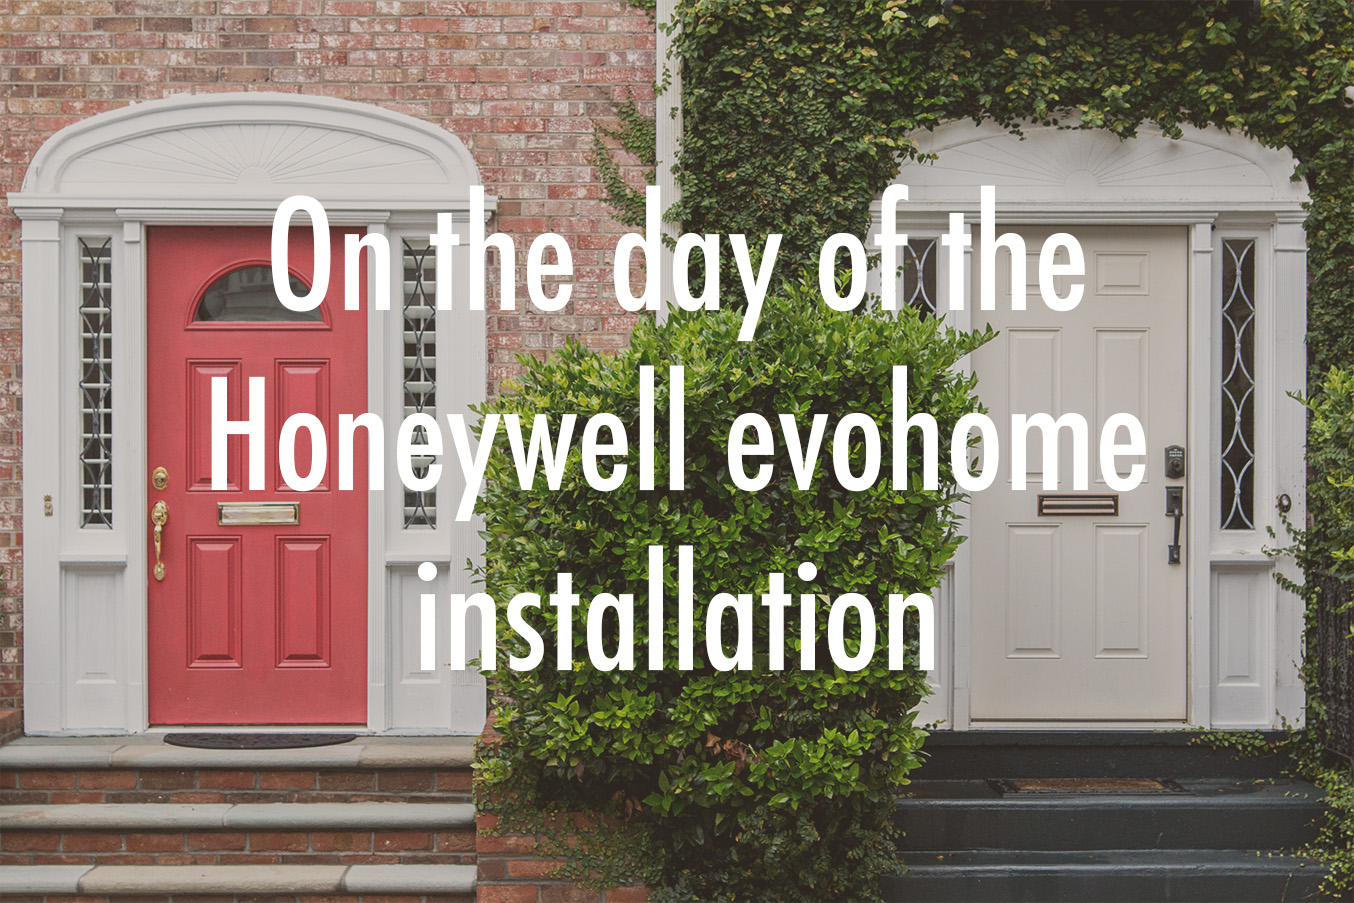 Day of honeywell evohome installation.jpg